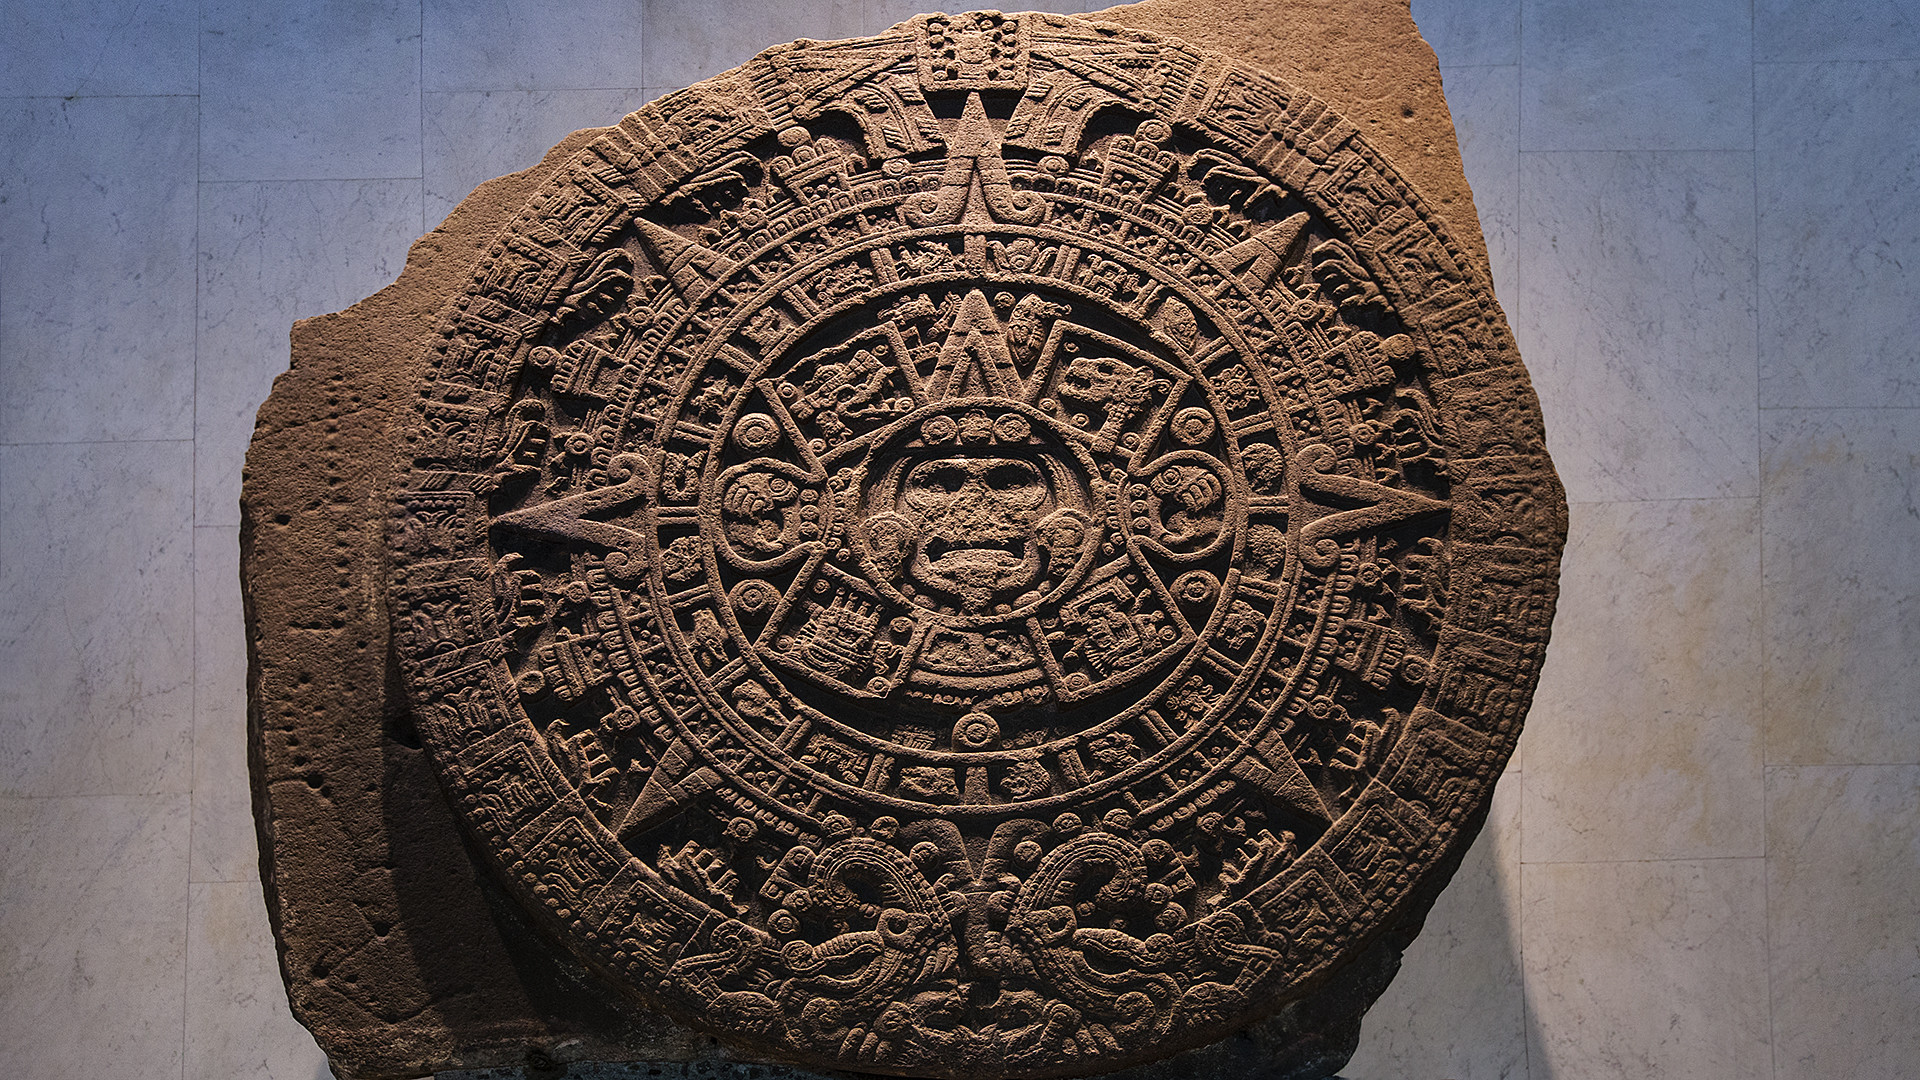 1920x1080 File:Aztec calendar stone in National Museum of Anthropology, Mexico  City.jpg